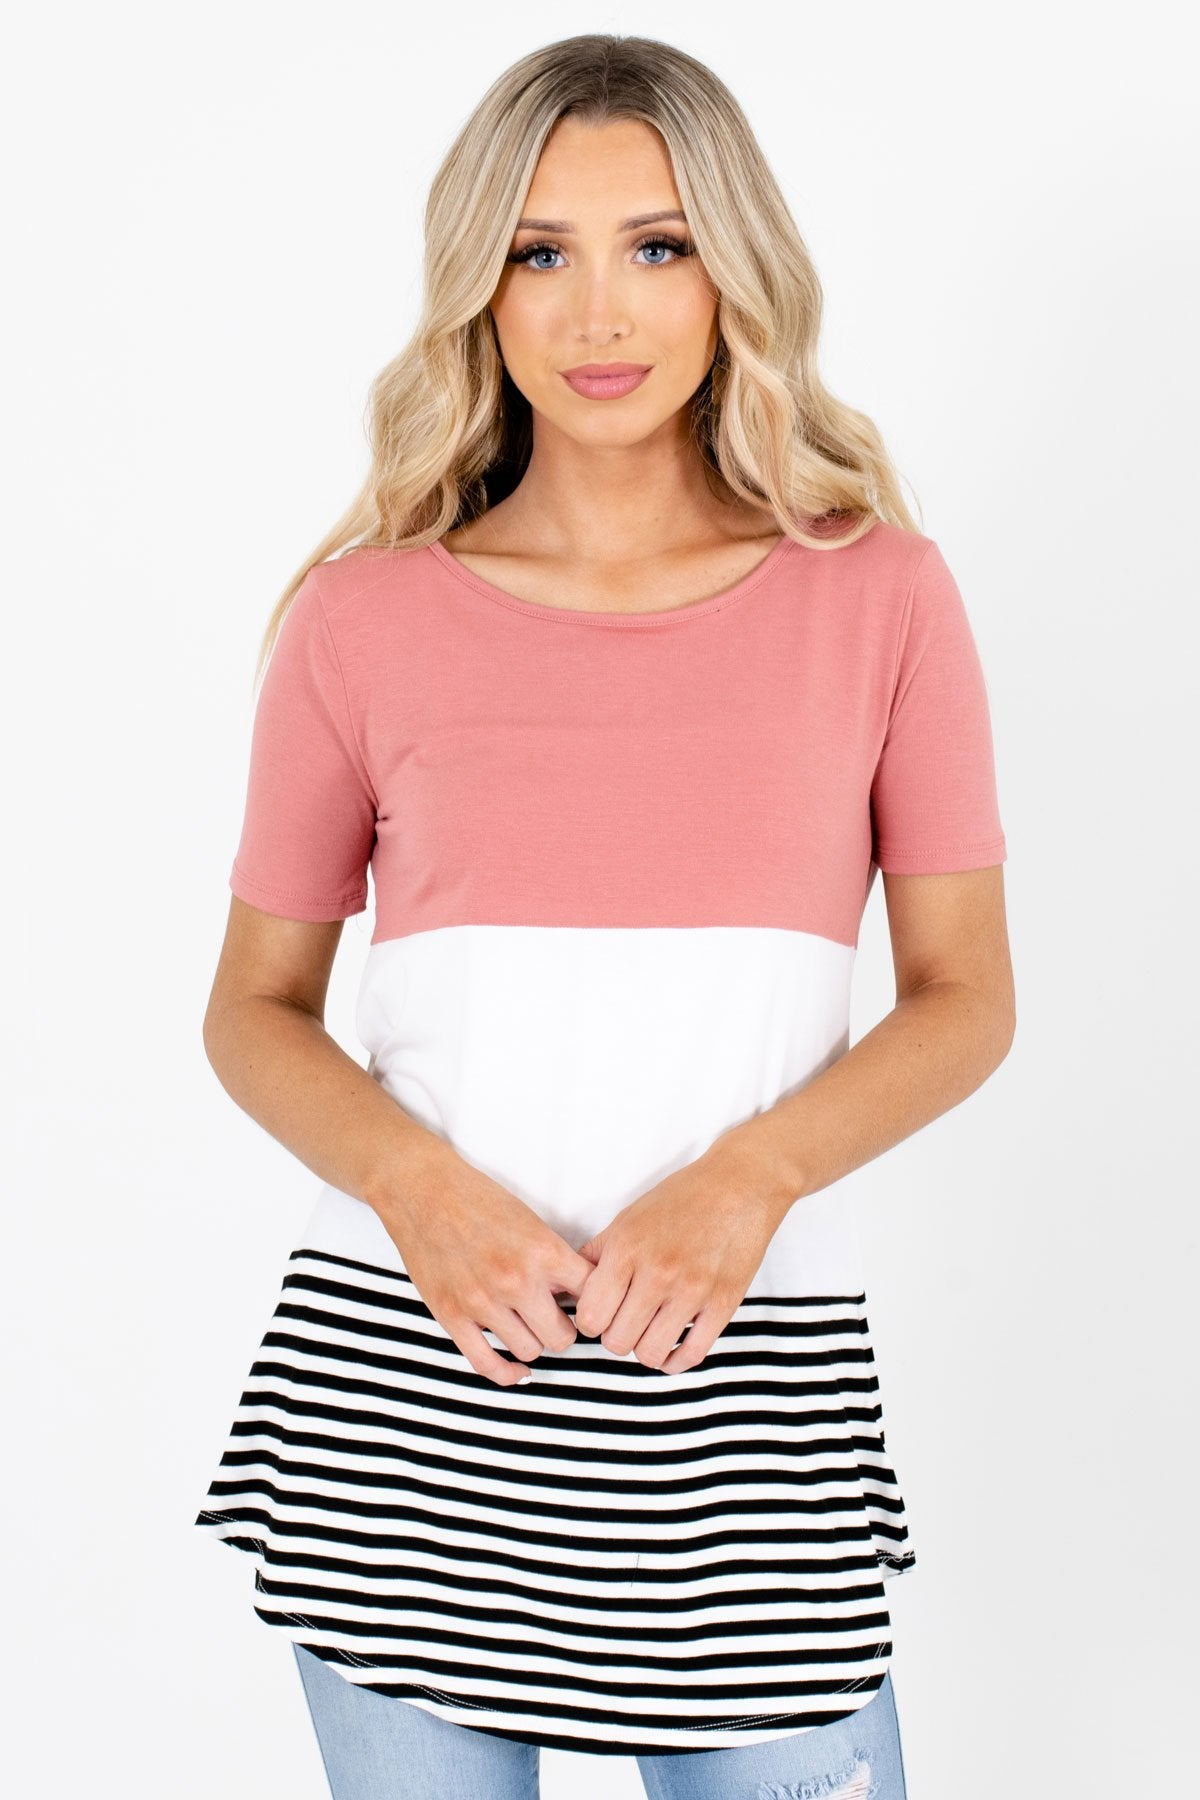 Pink White and Black Color Block Patterned Boutique Tops for Women